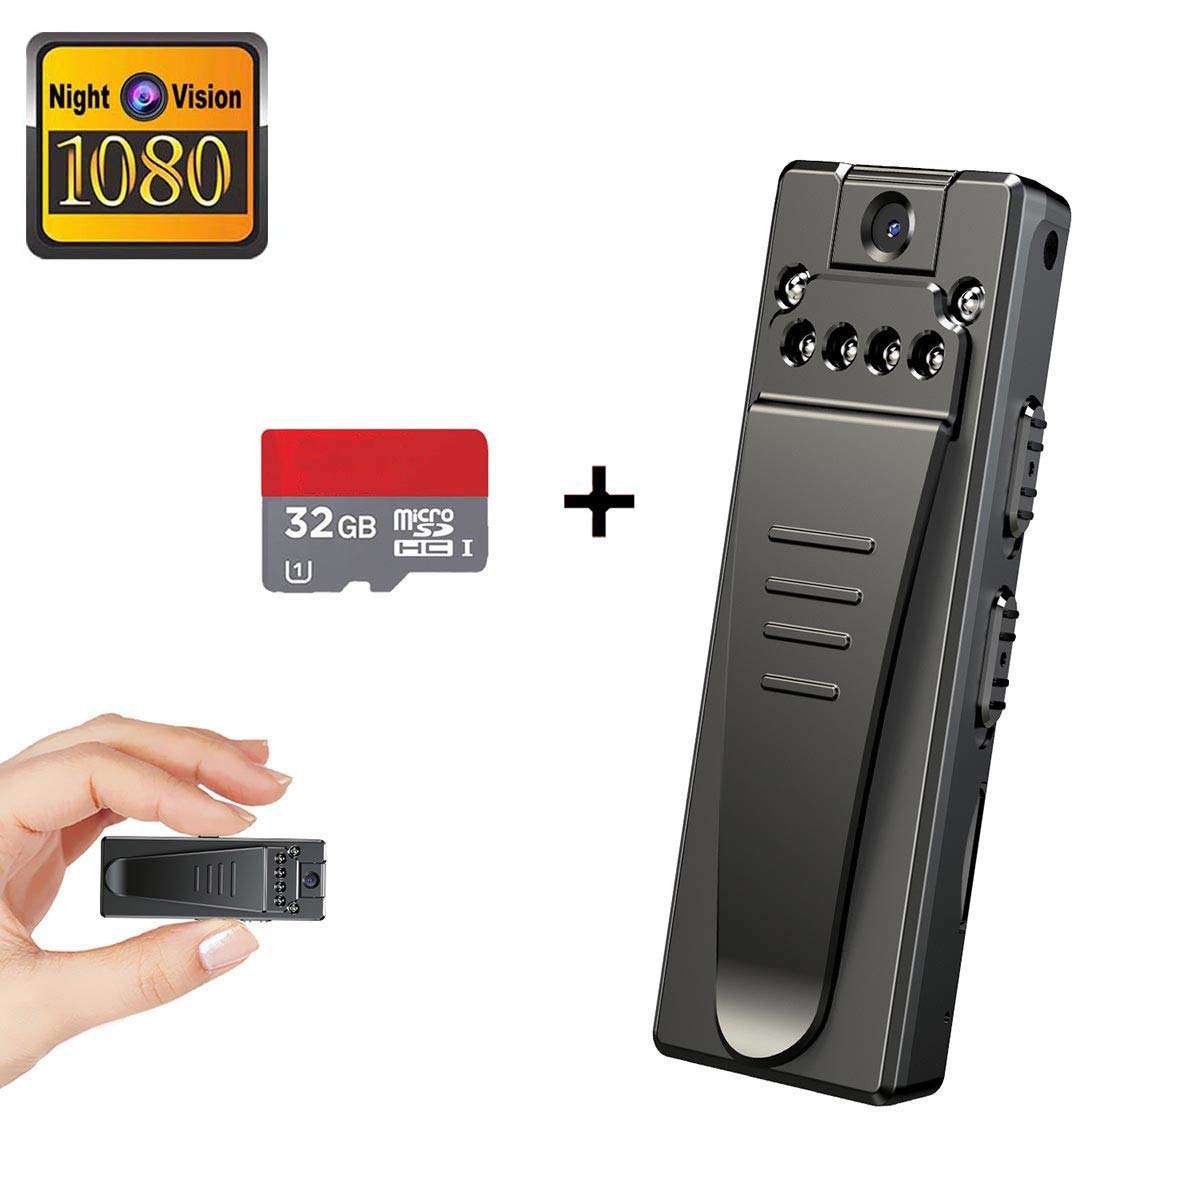 Mini Spy Hidden Camera, Full HD 1080P Portable Mini Nanny Cam with Night Vision and Portable Pocket Clip Wearable Body Camera Video Recorder,Small Security Camera for Home and Office(with 32G Card) by KONPCOIU